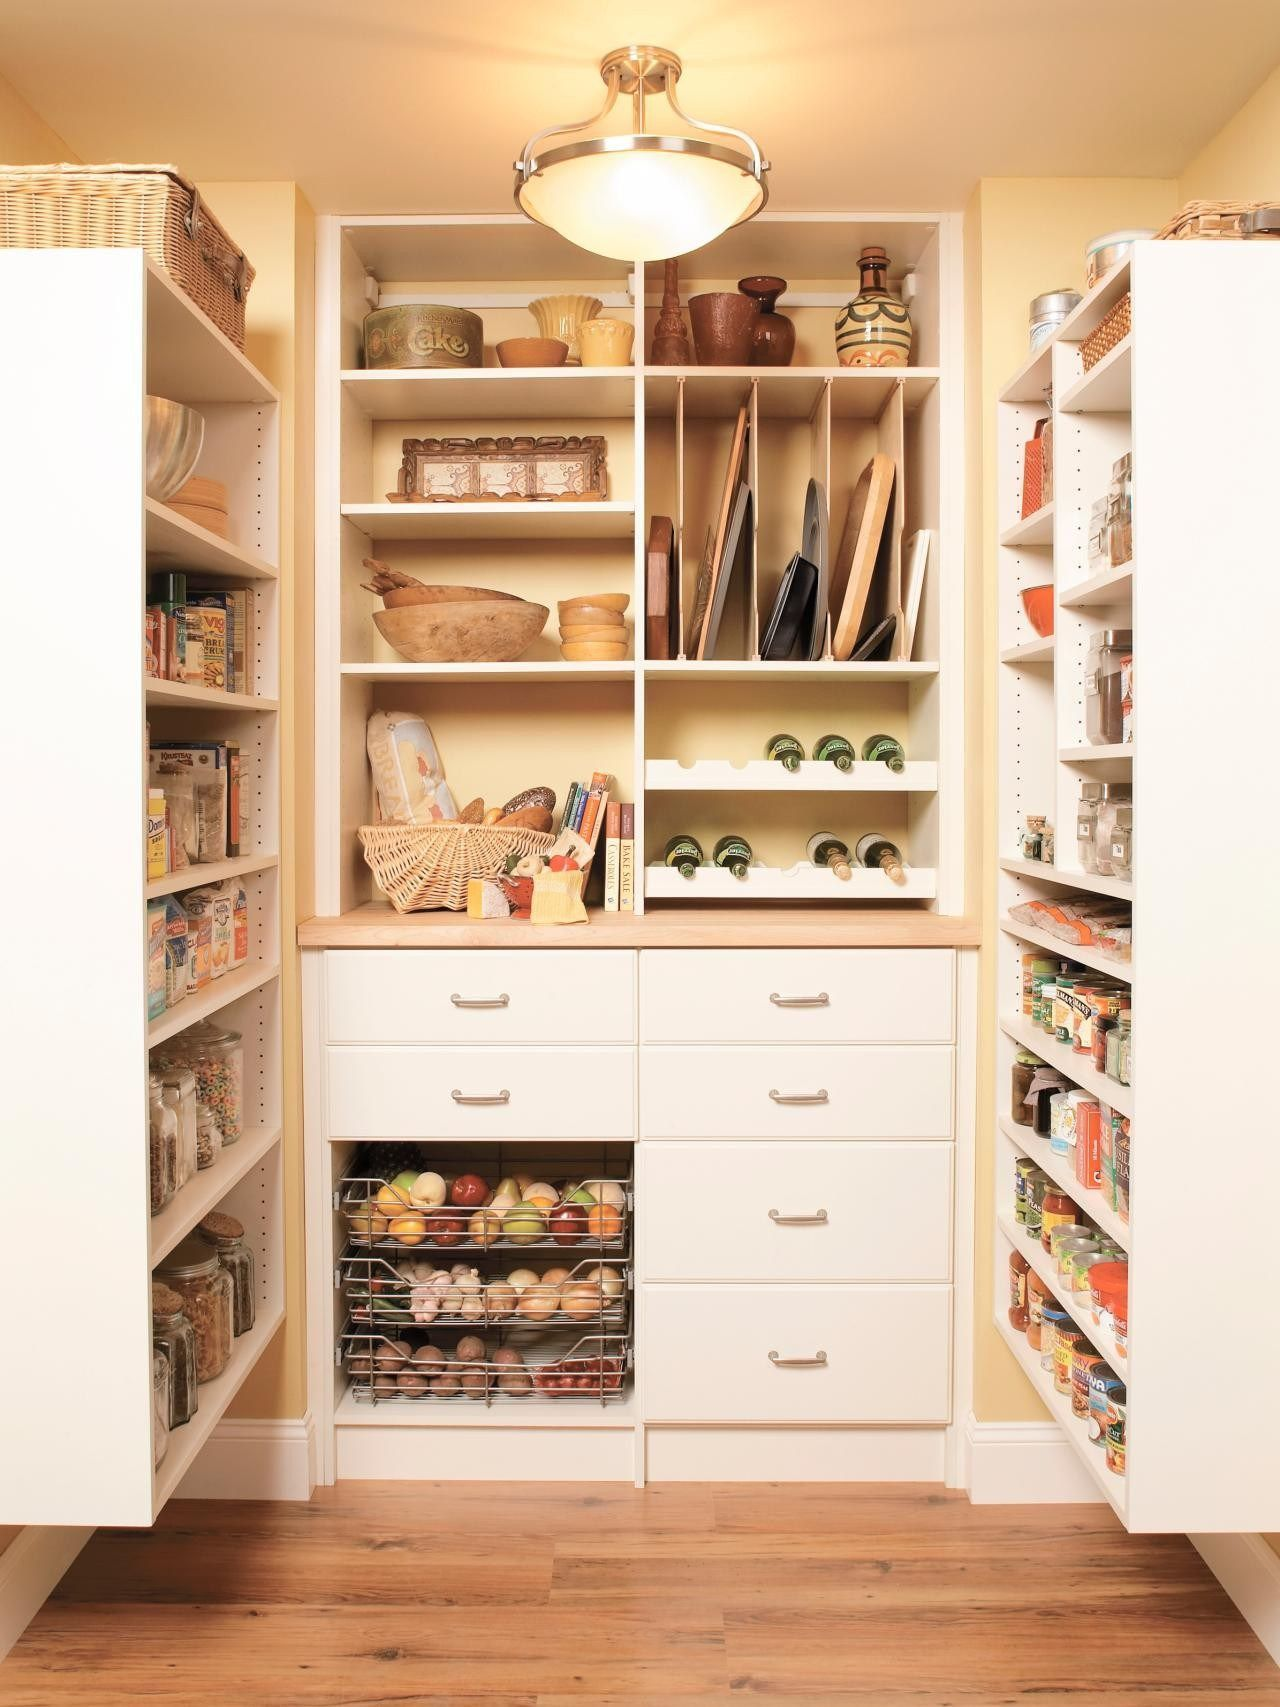 Unique Large Pantry Design Shelves #largepantryideas Large Pantry Design Shelves - Unique Large Pantry Design Shelves, 51 Of Kitchen Pantry Designs & Ideas #largepantryideas Unique Large Pantry Design Shelves #largepantryideas Large Pantry Design Shelves - Unique Large Pantry Design Shelves, 51 Of Kitchen Pantry Designs & Ideas #largepantryideas